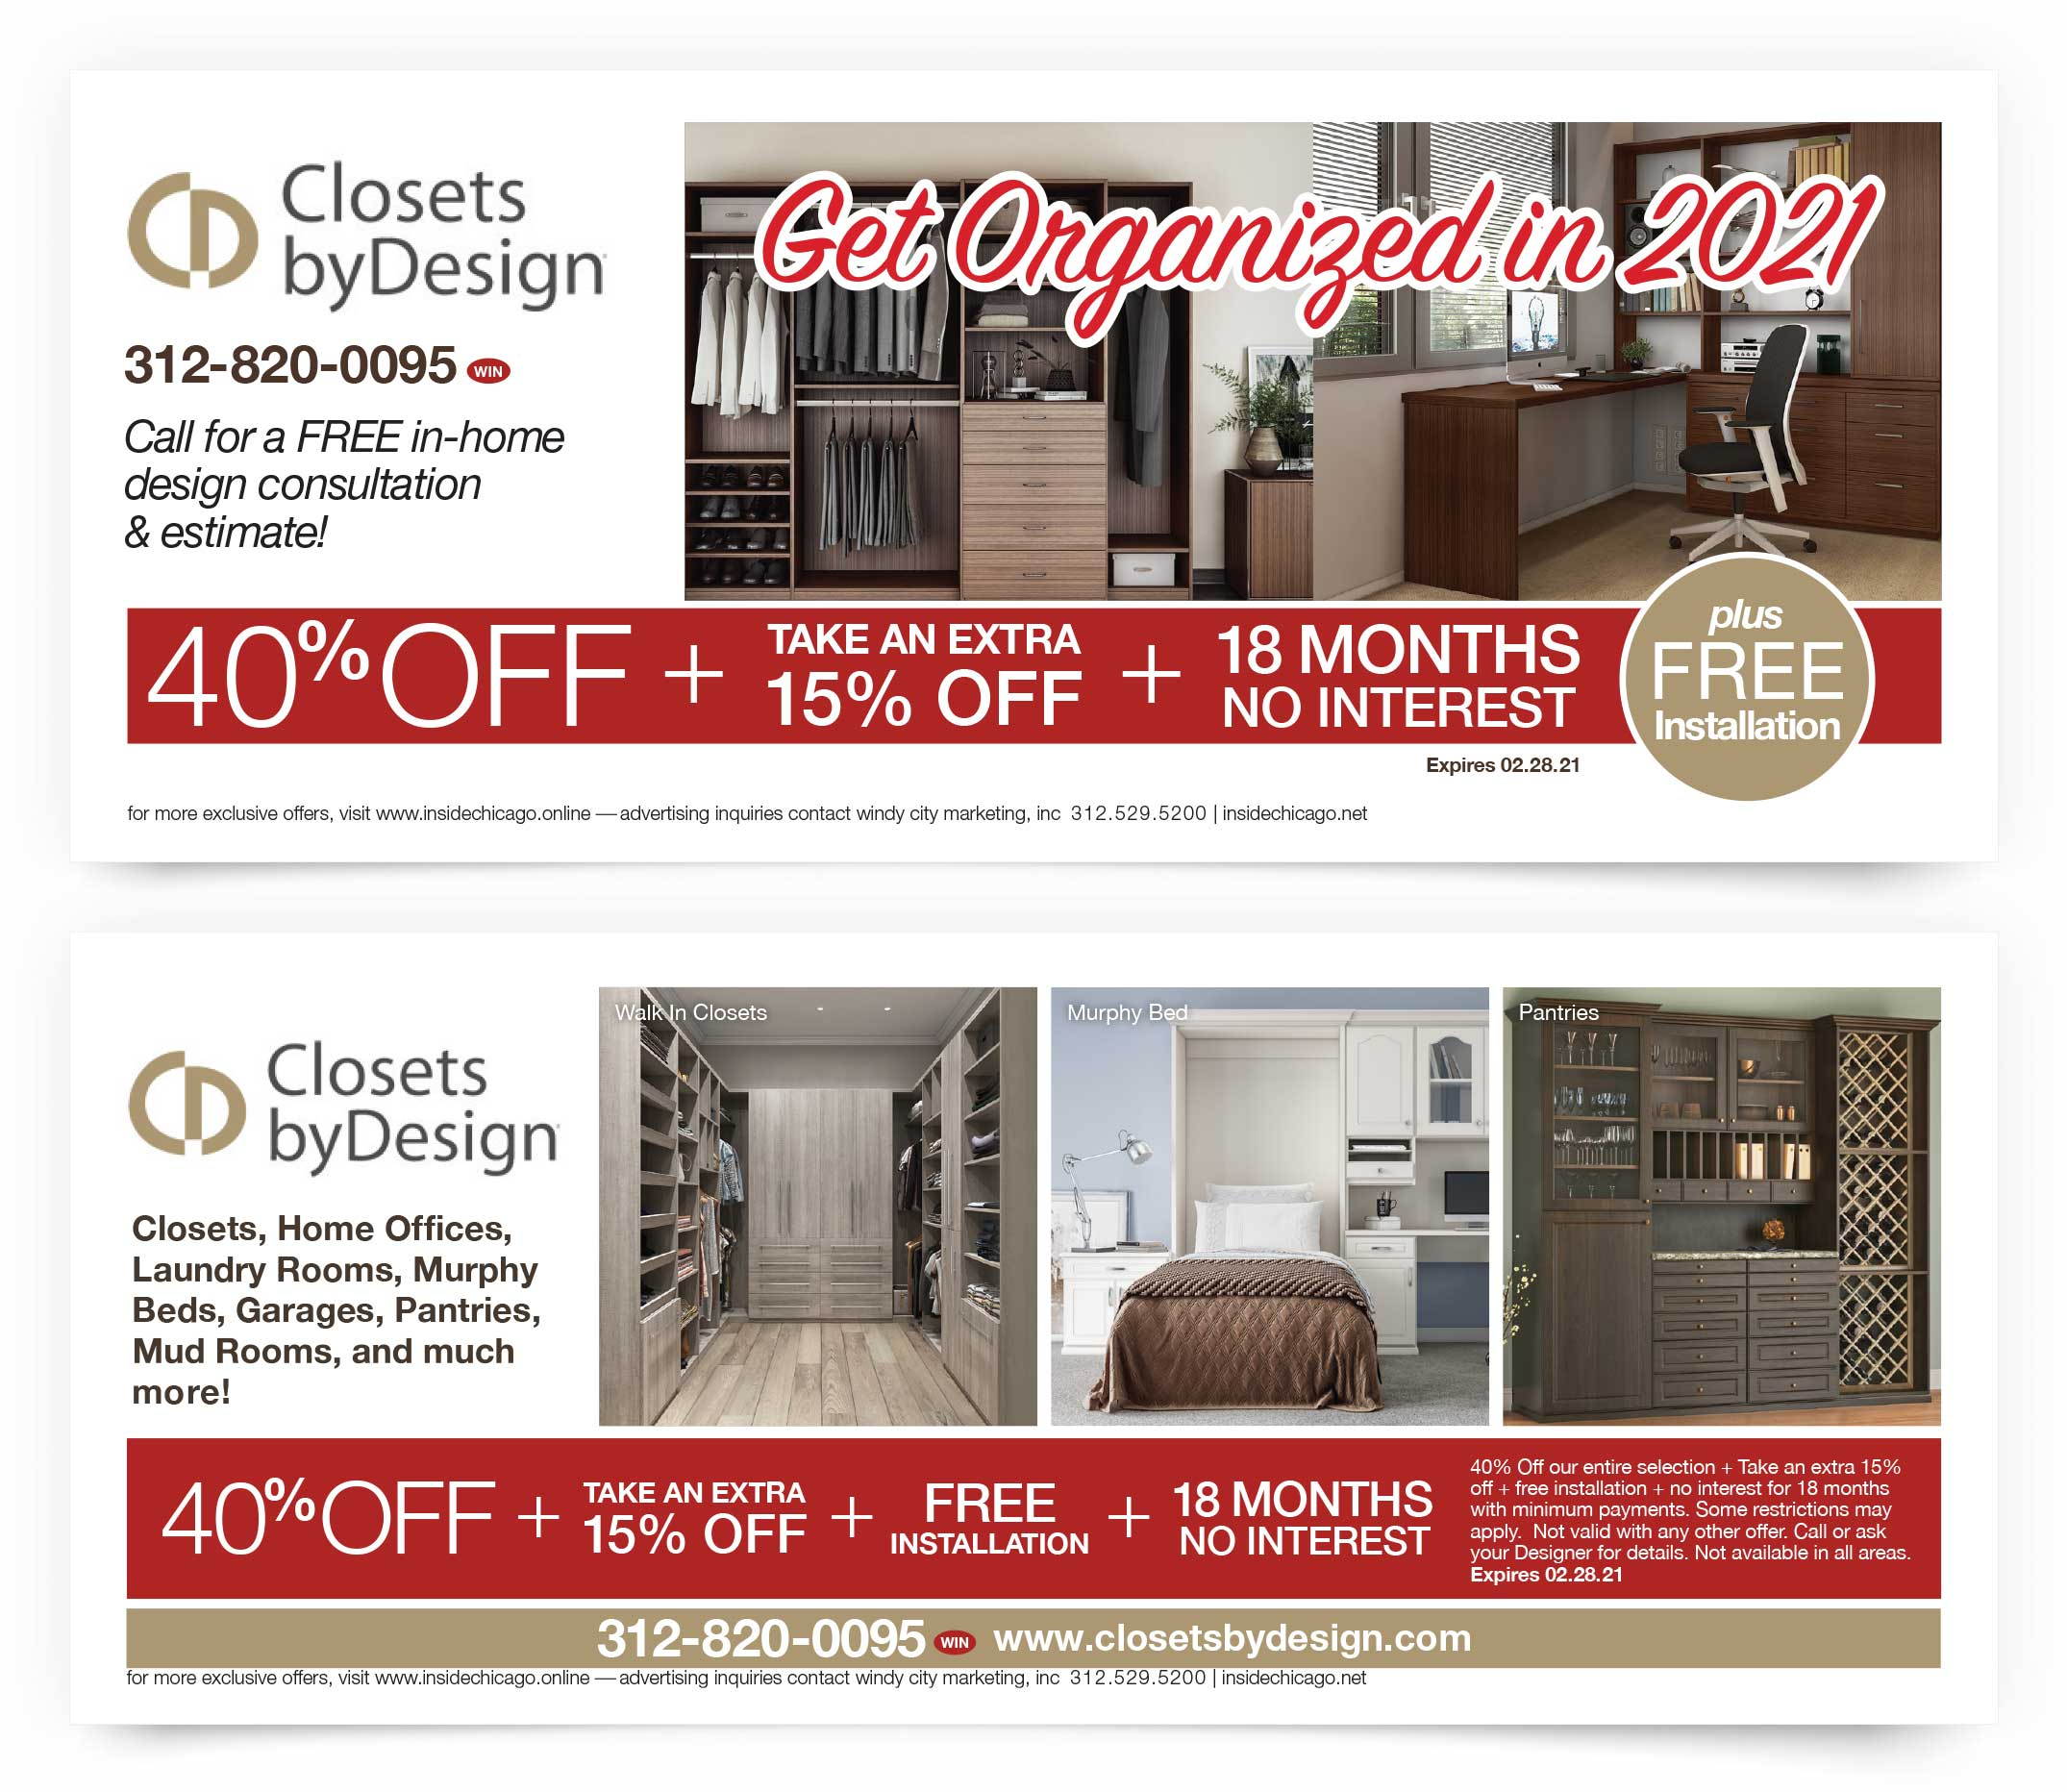 Closets by Design Coupons